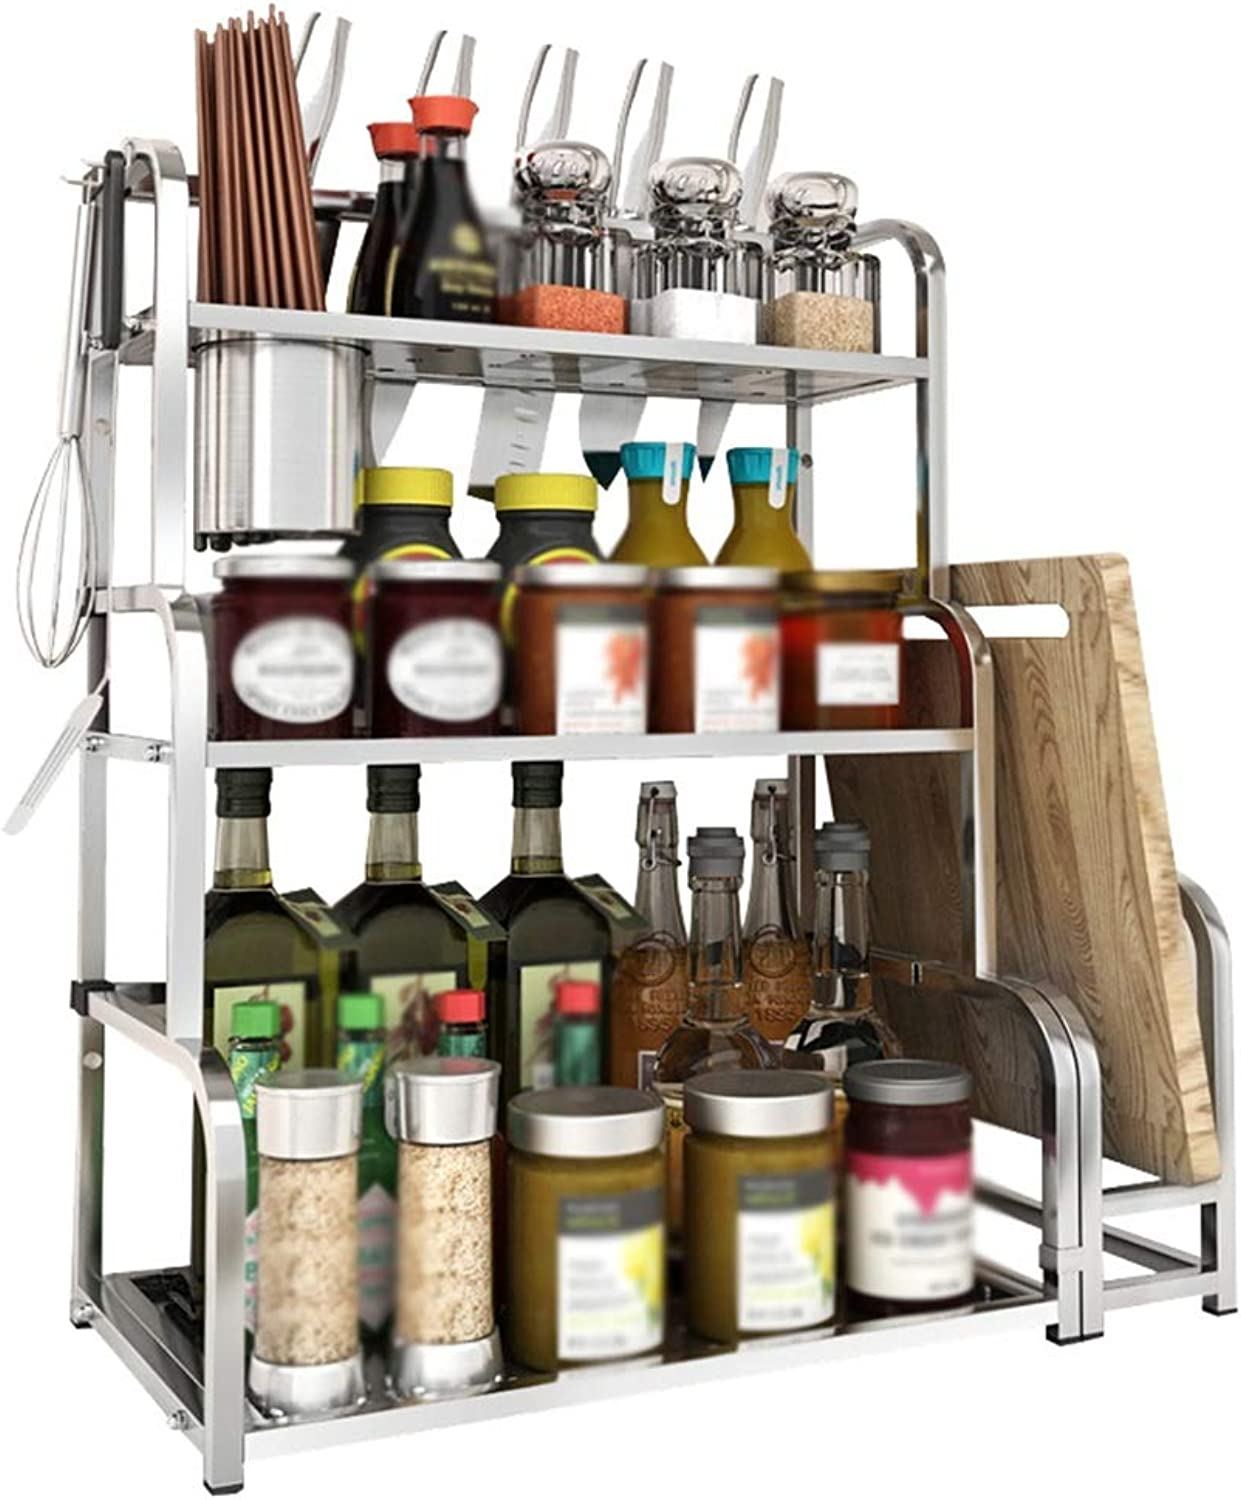 YANZHEN Kitchen Shelf Floor-Standing Simple and Modern Spice Rack Storage Kitchenware Wall Mount Stainless Steel, Bearing 50KG, 3 Size (color   Silver, Size   48x22x58cm)